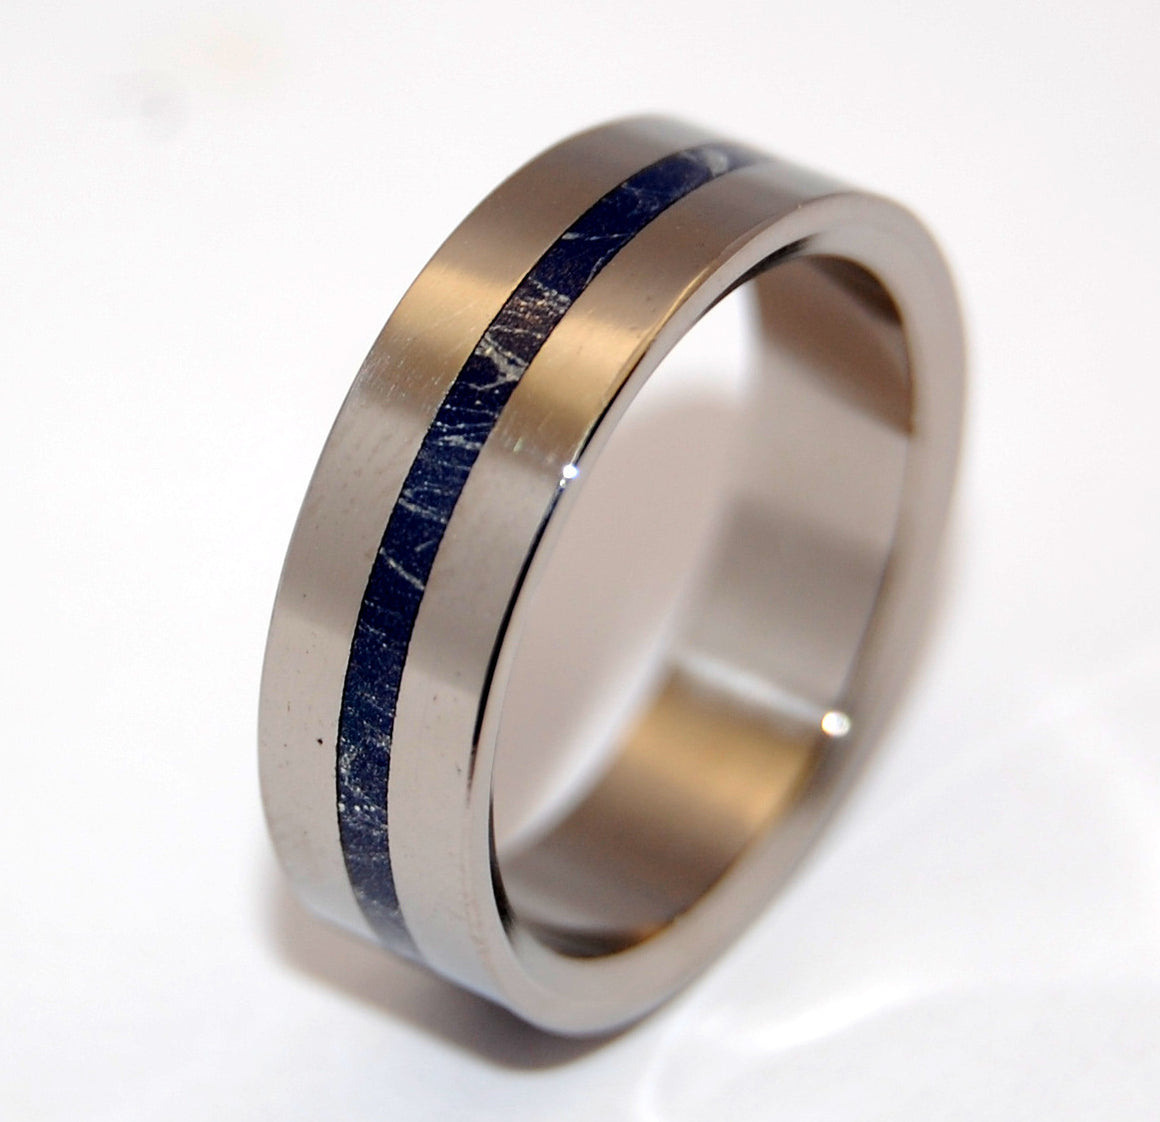 A Little of You | M3 Titanium Wedding Ring